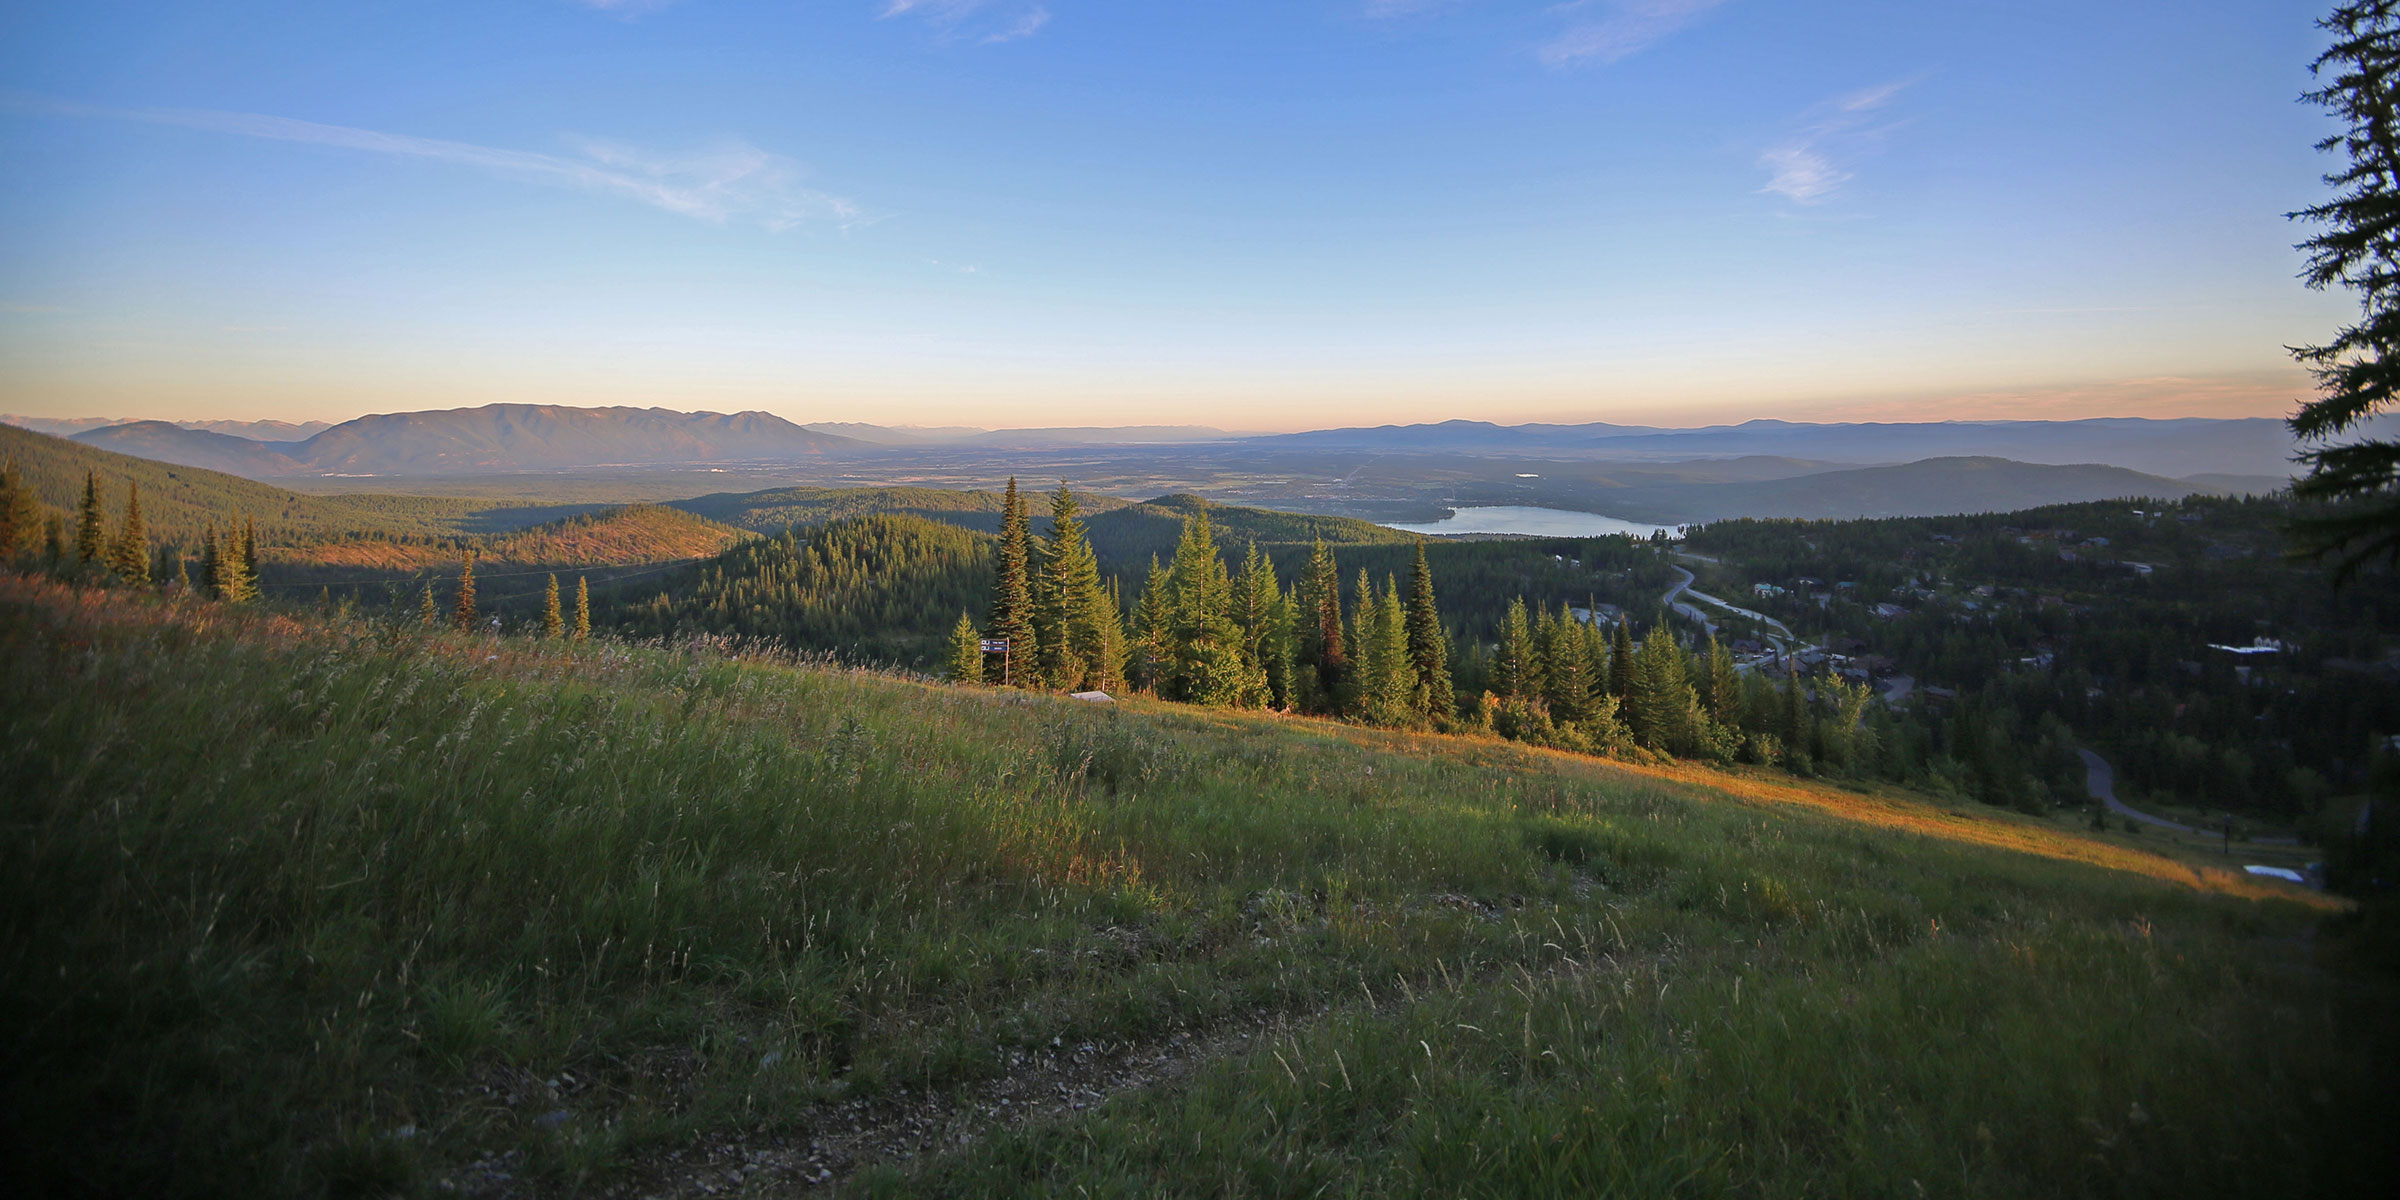 Flathead Valley from Big Mountain